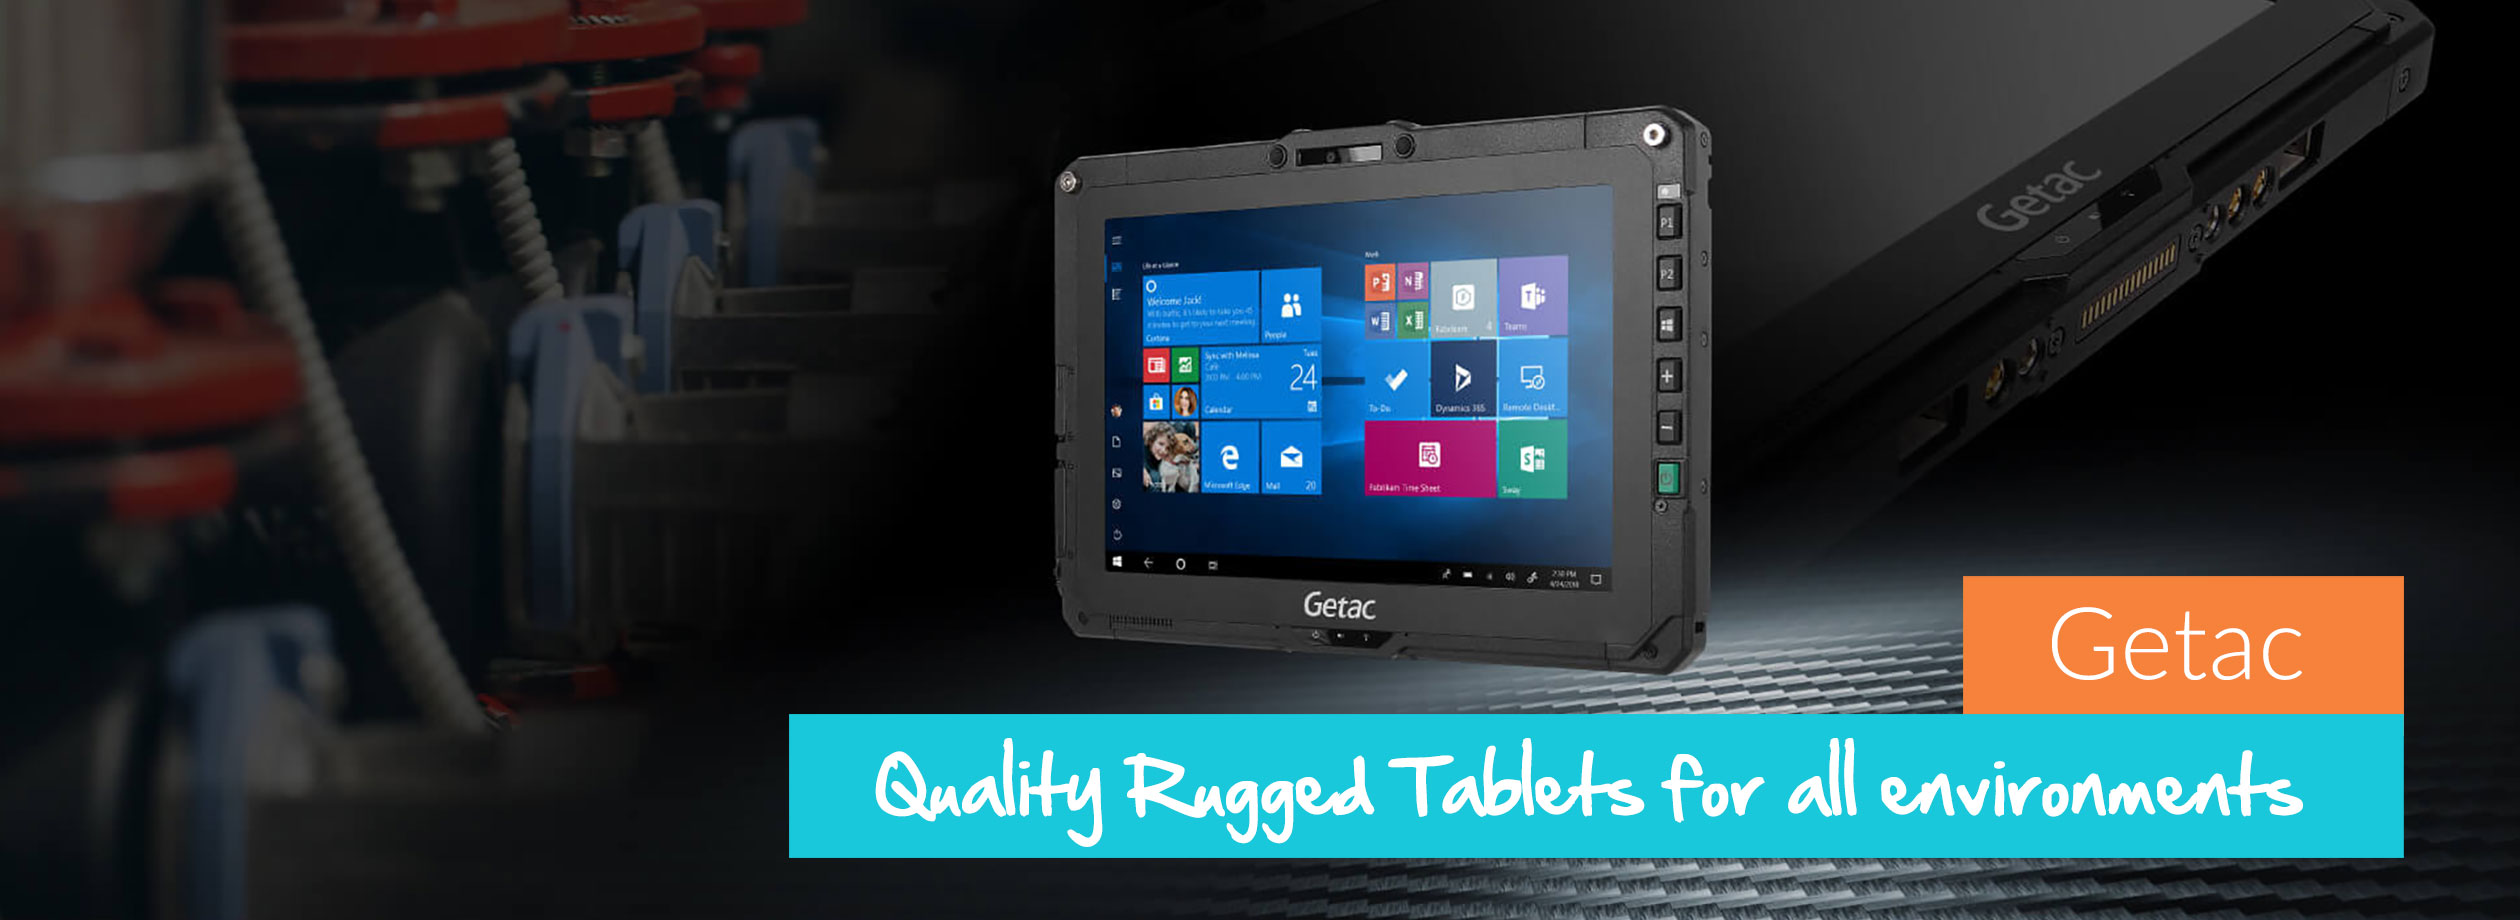 Getac - Quality Rugged Tablets for Rugged Environments